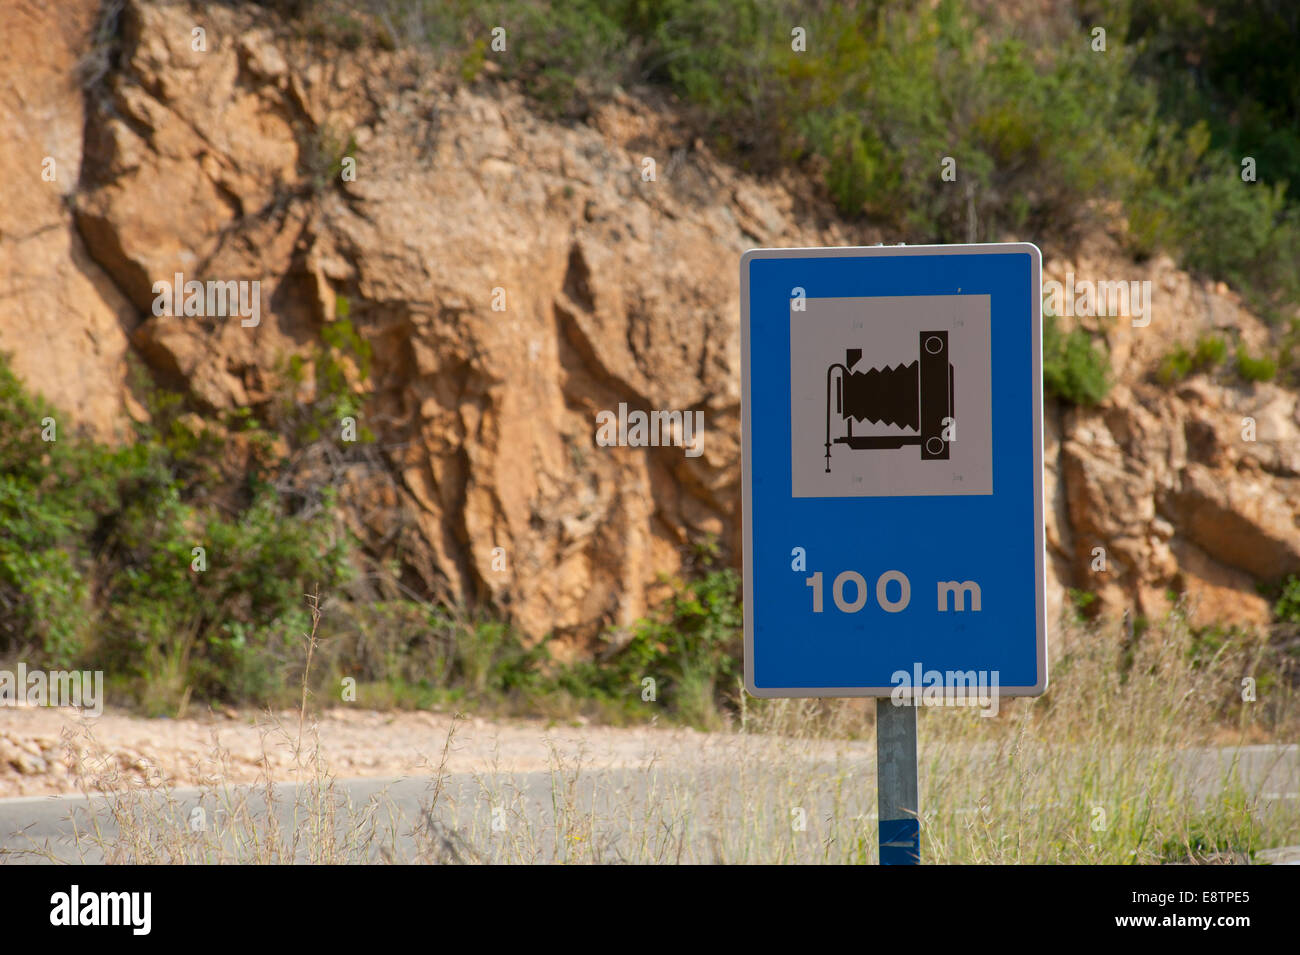 Spain Catalonia. Tourist road signs indicating a good place to take photographs from on the cliff top Costa Brava - Stock Image